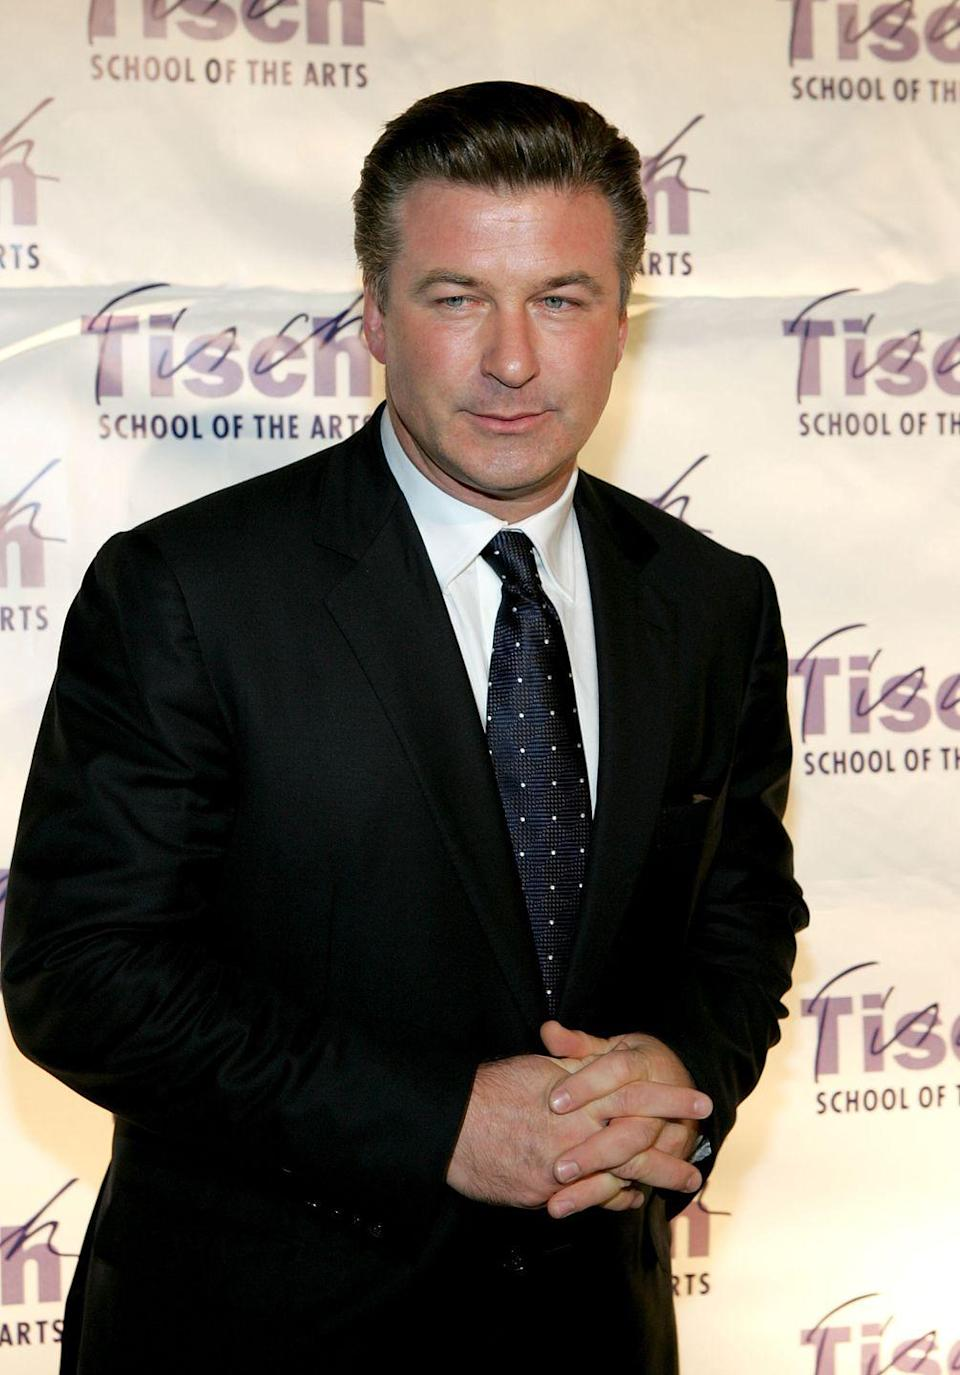 <p>Alec Baldwin wore his dark brown hair in his typical slicked back fashion for the Tisch School of the Arts Annual Gala in 2006. </p>